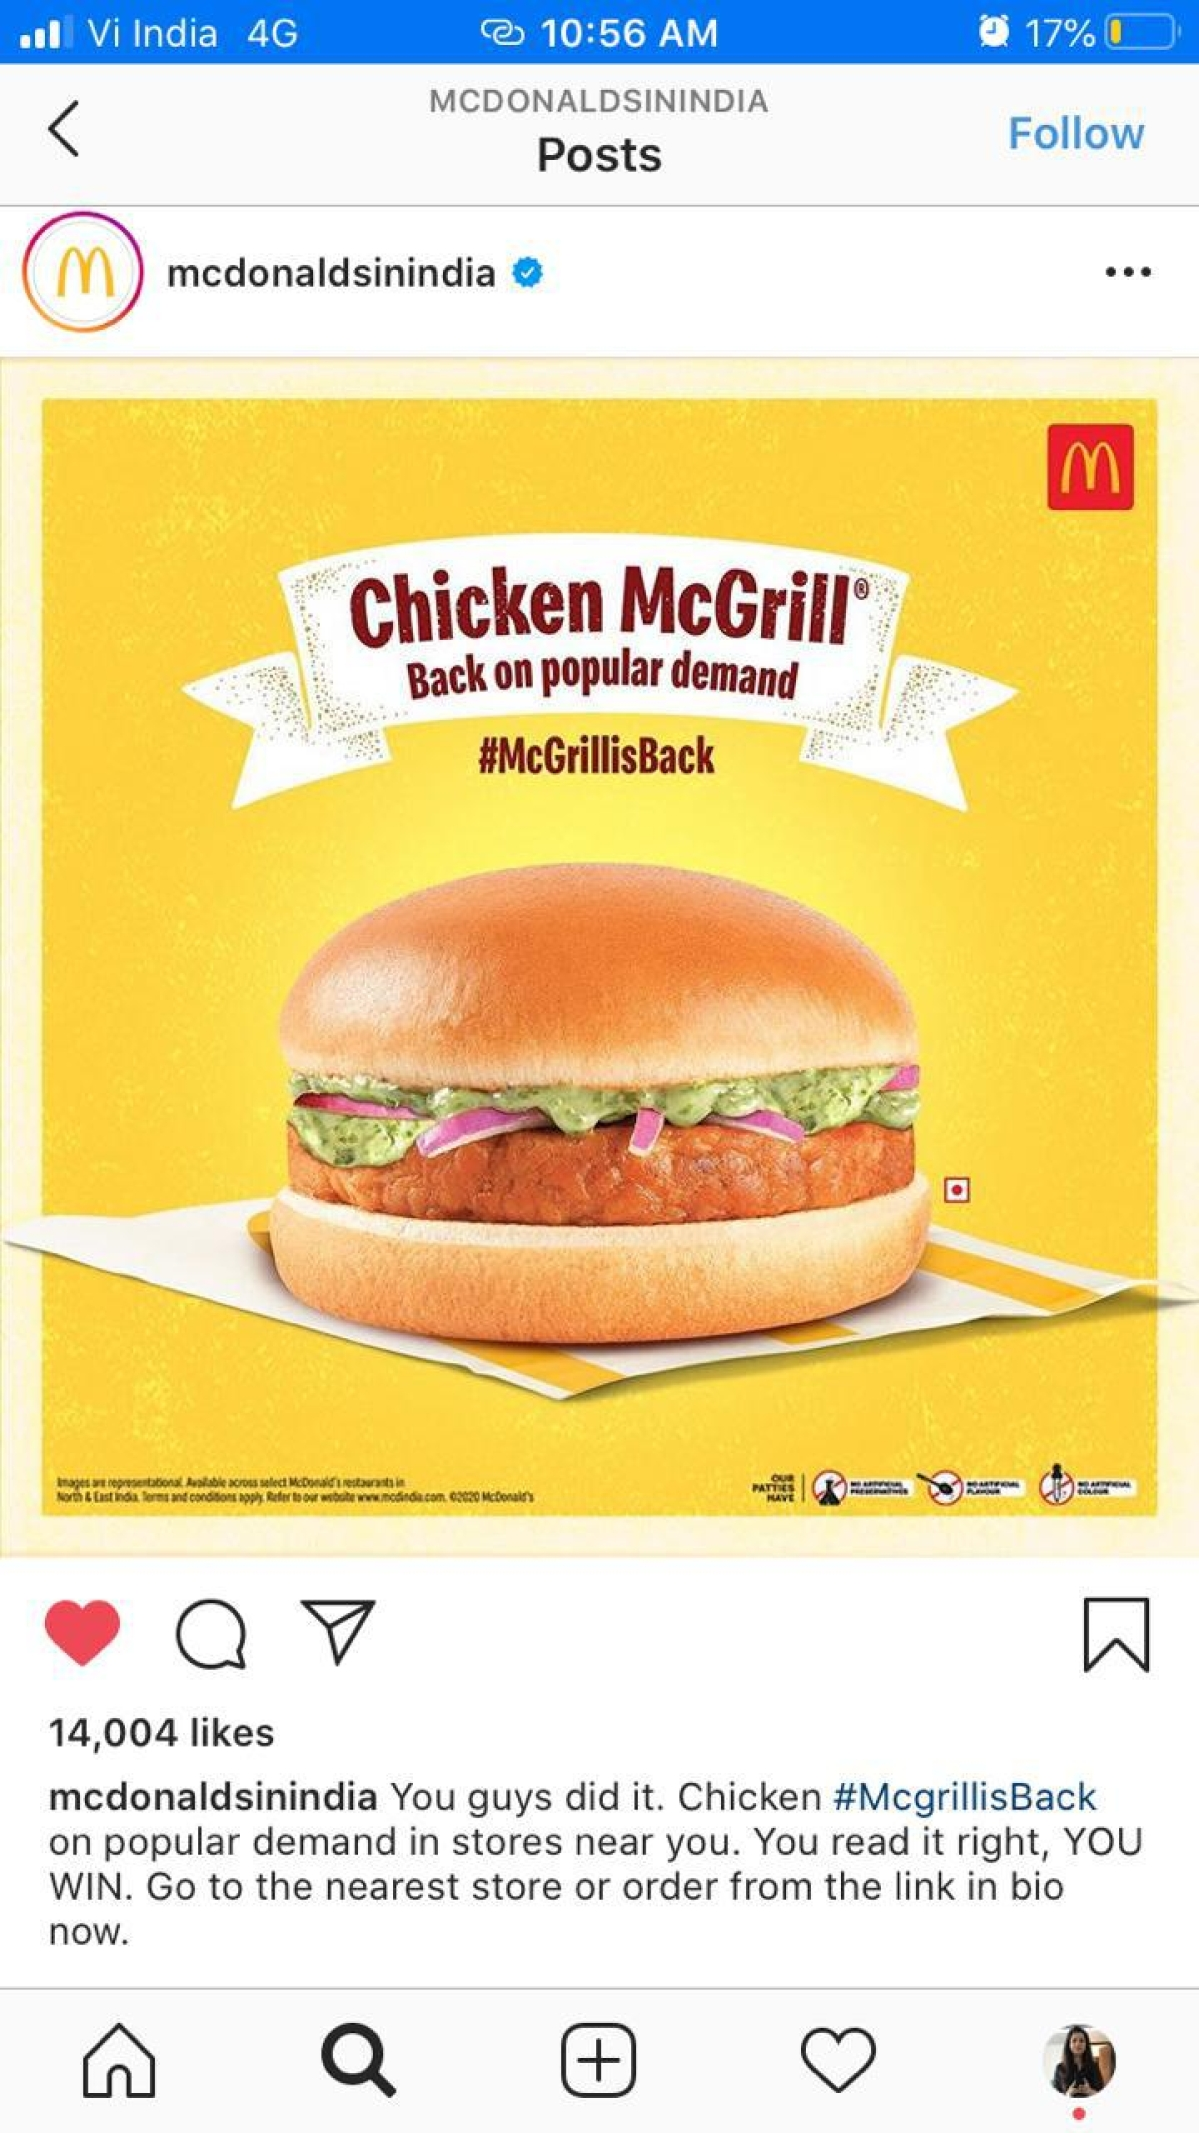 McDonald's re-introduces Chicken McGrill after netizens urge the brand to #BringMcGrillBack